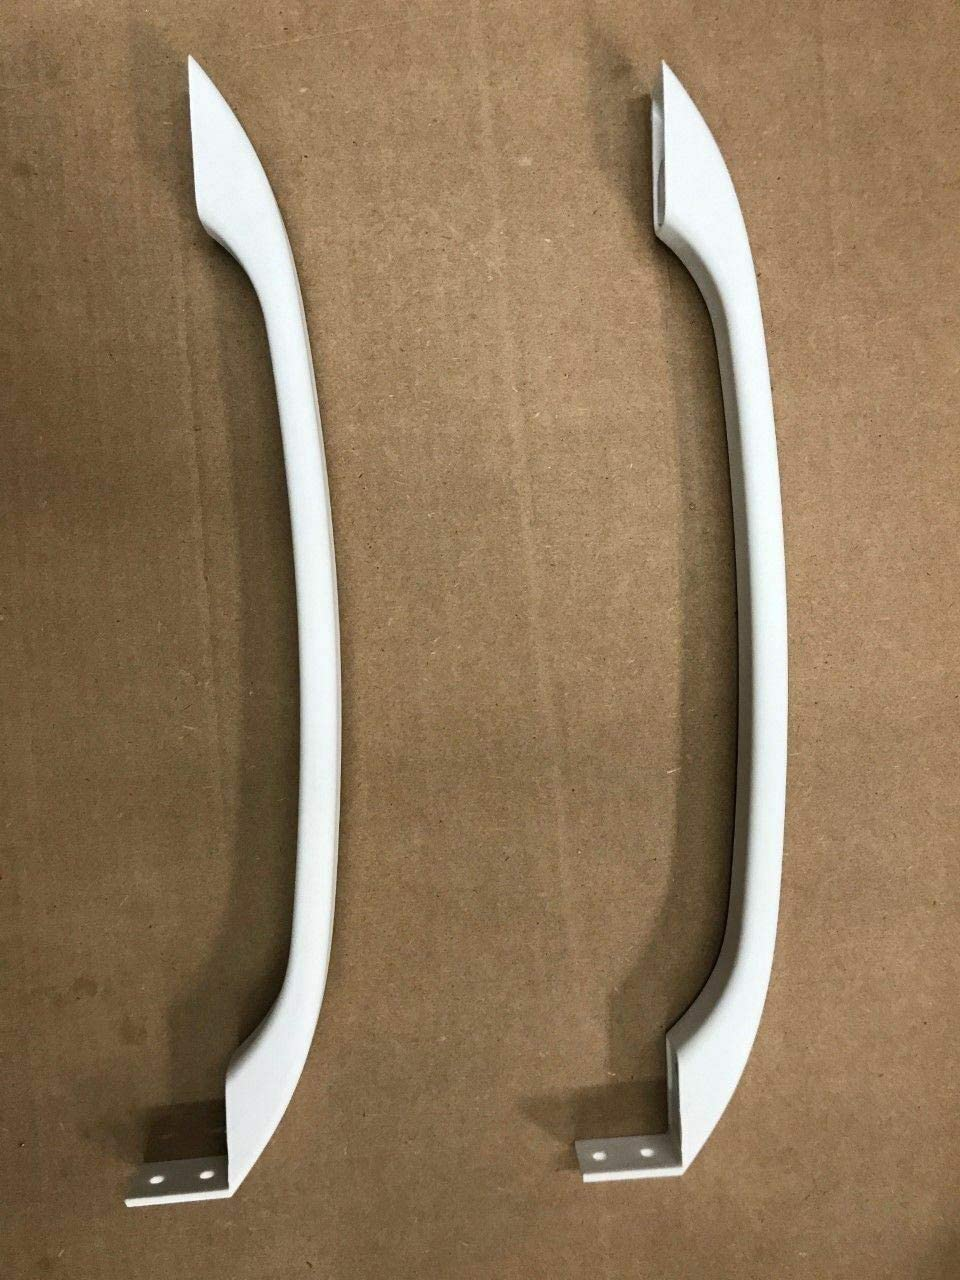 San Diego Mall New - 2 x Purchase 218428101 Door Compatible Frigidaire Handle Refri with